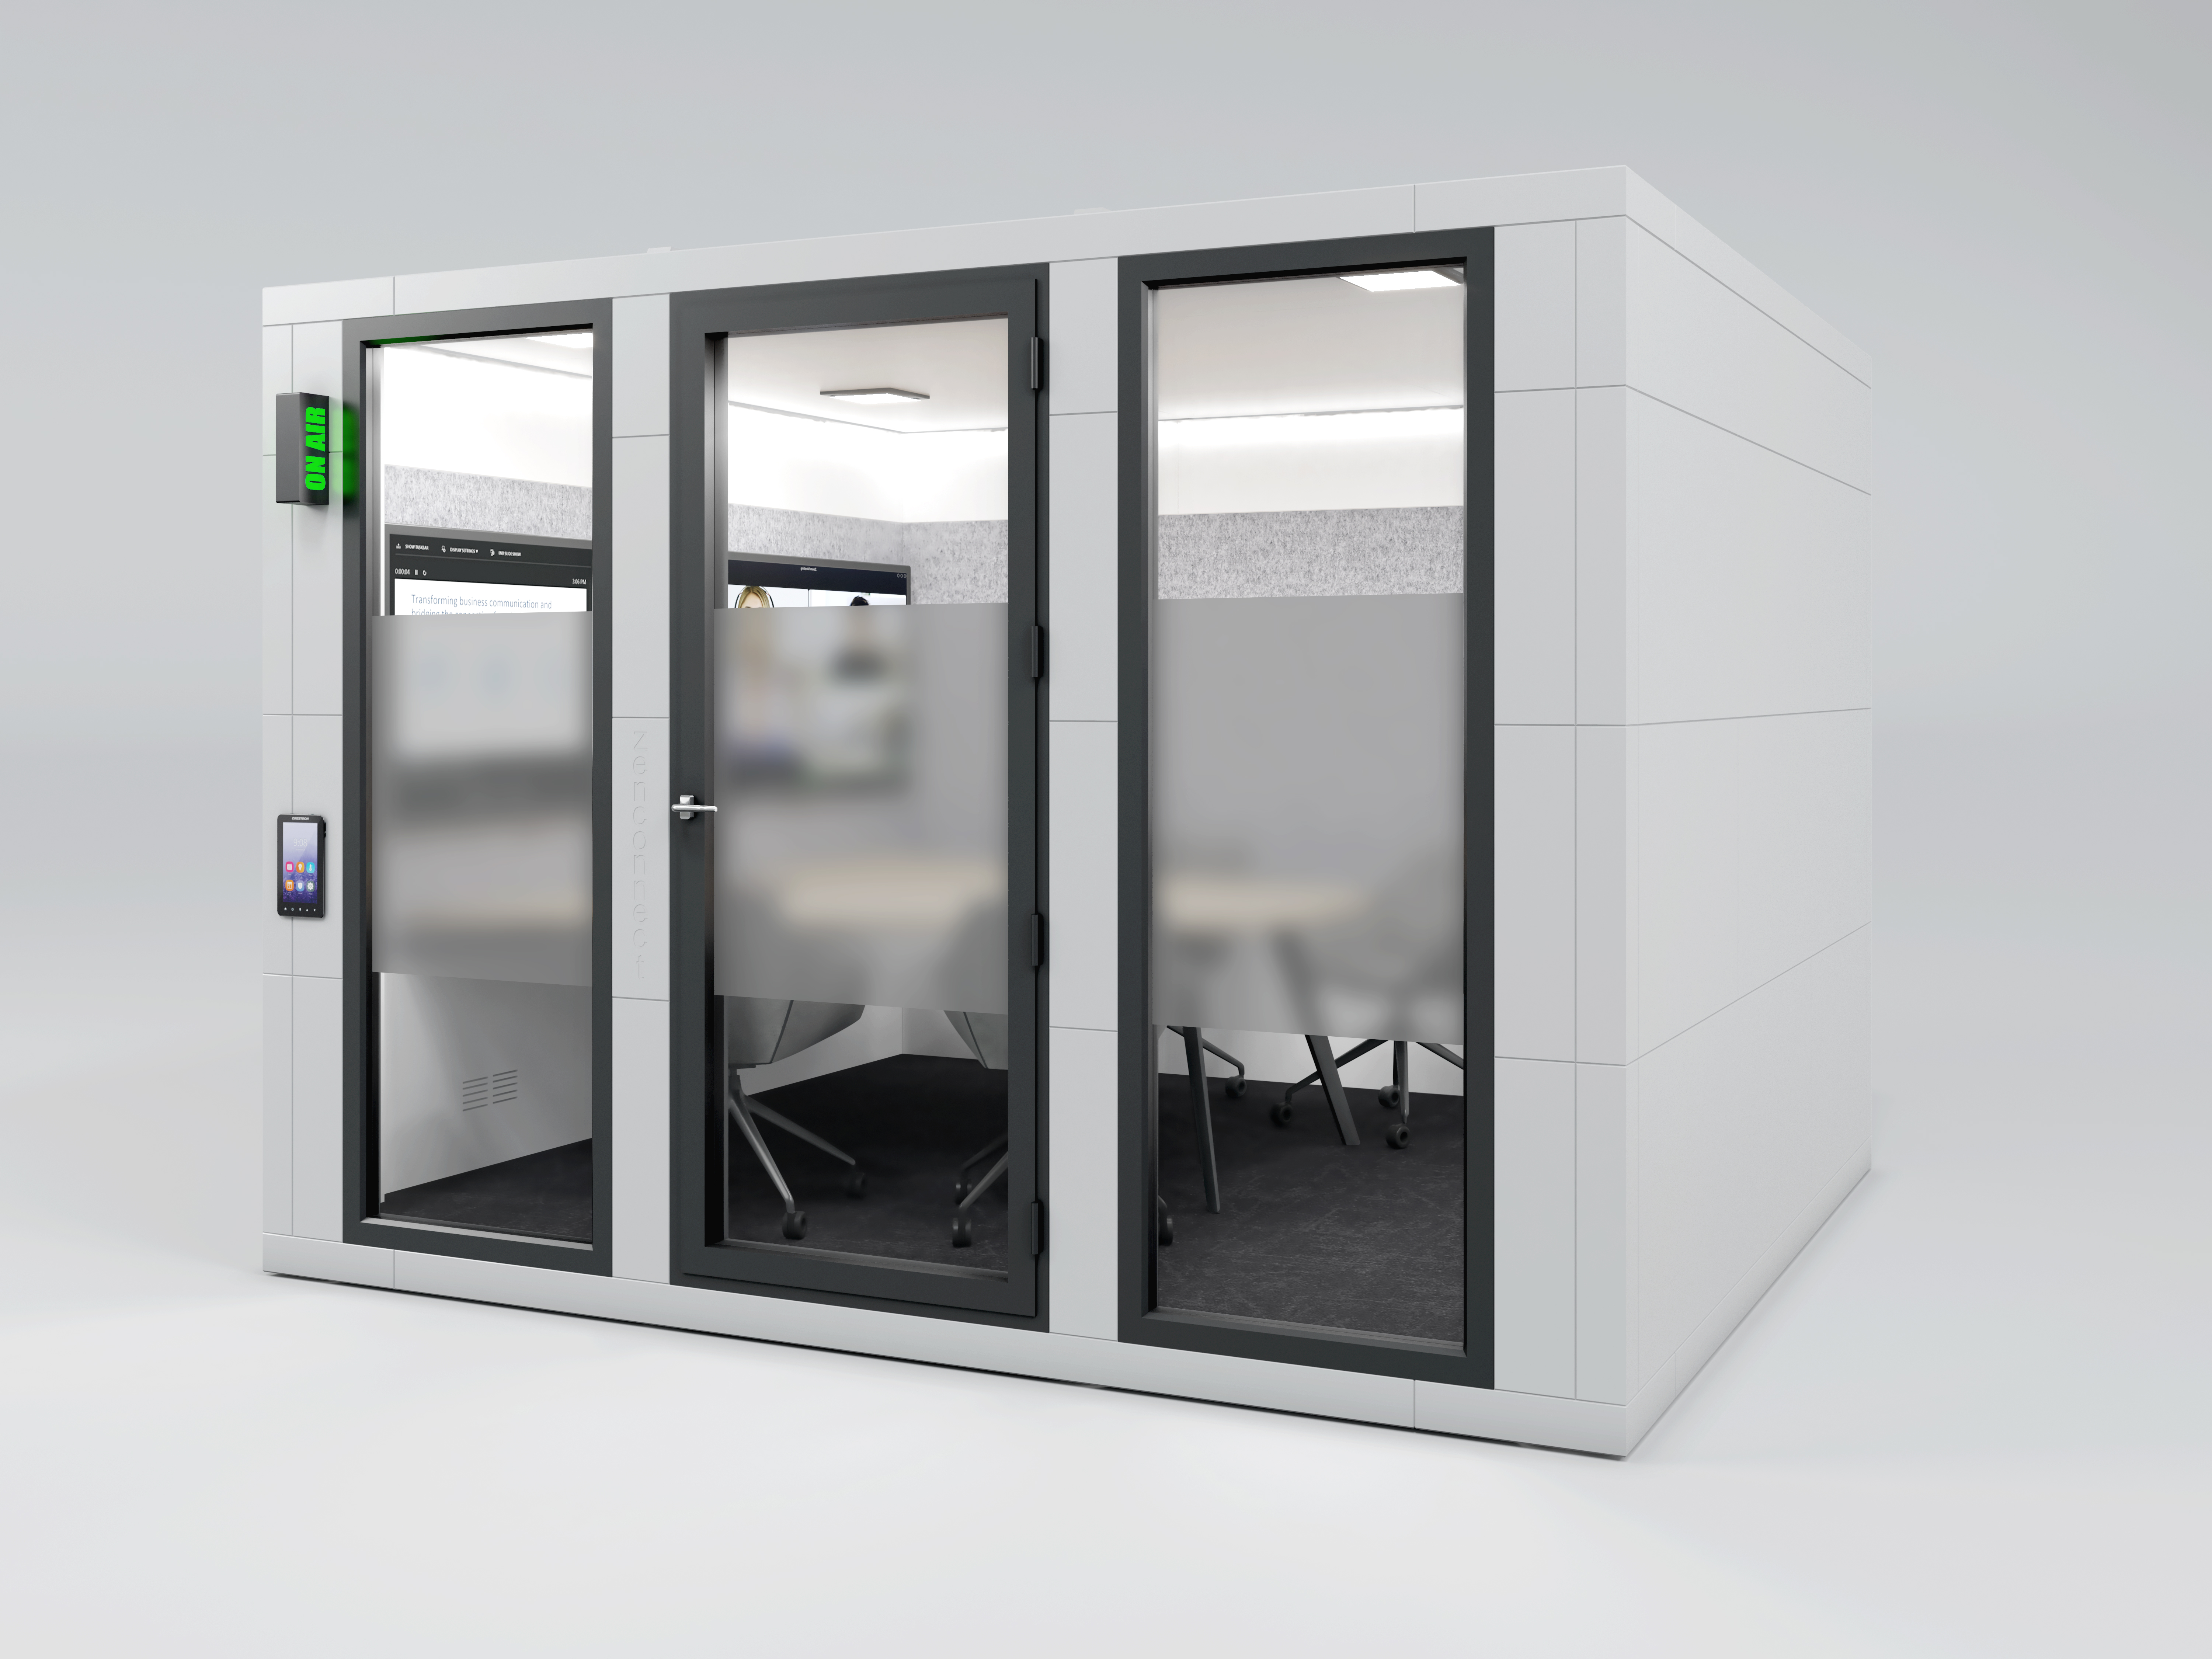 Global Shift to Hybrid Working Leads to Launch of Video Conferencing Pods by Zentura